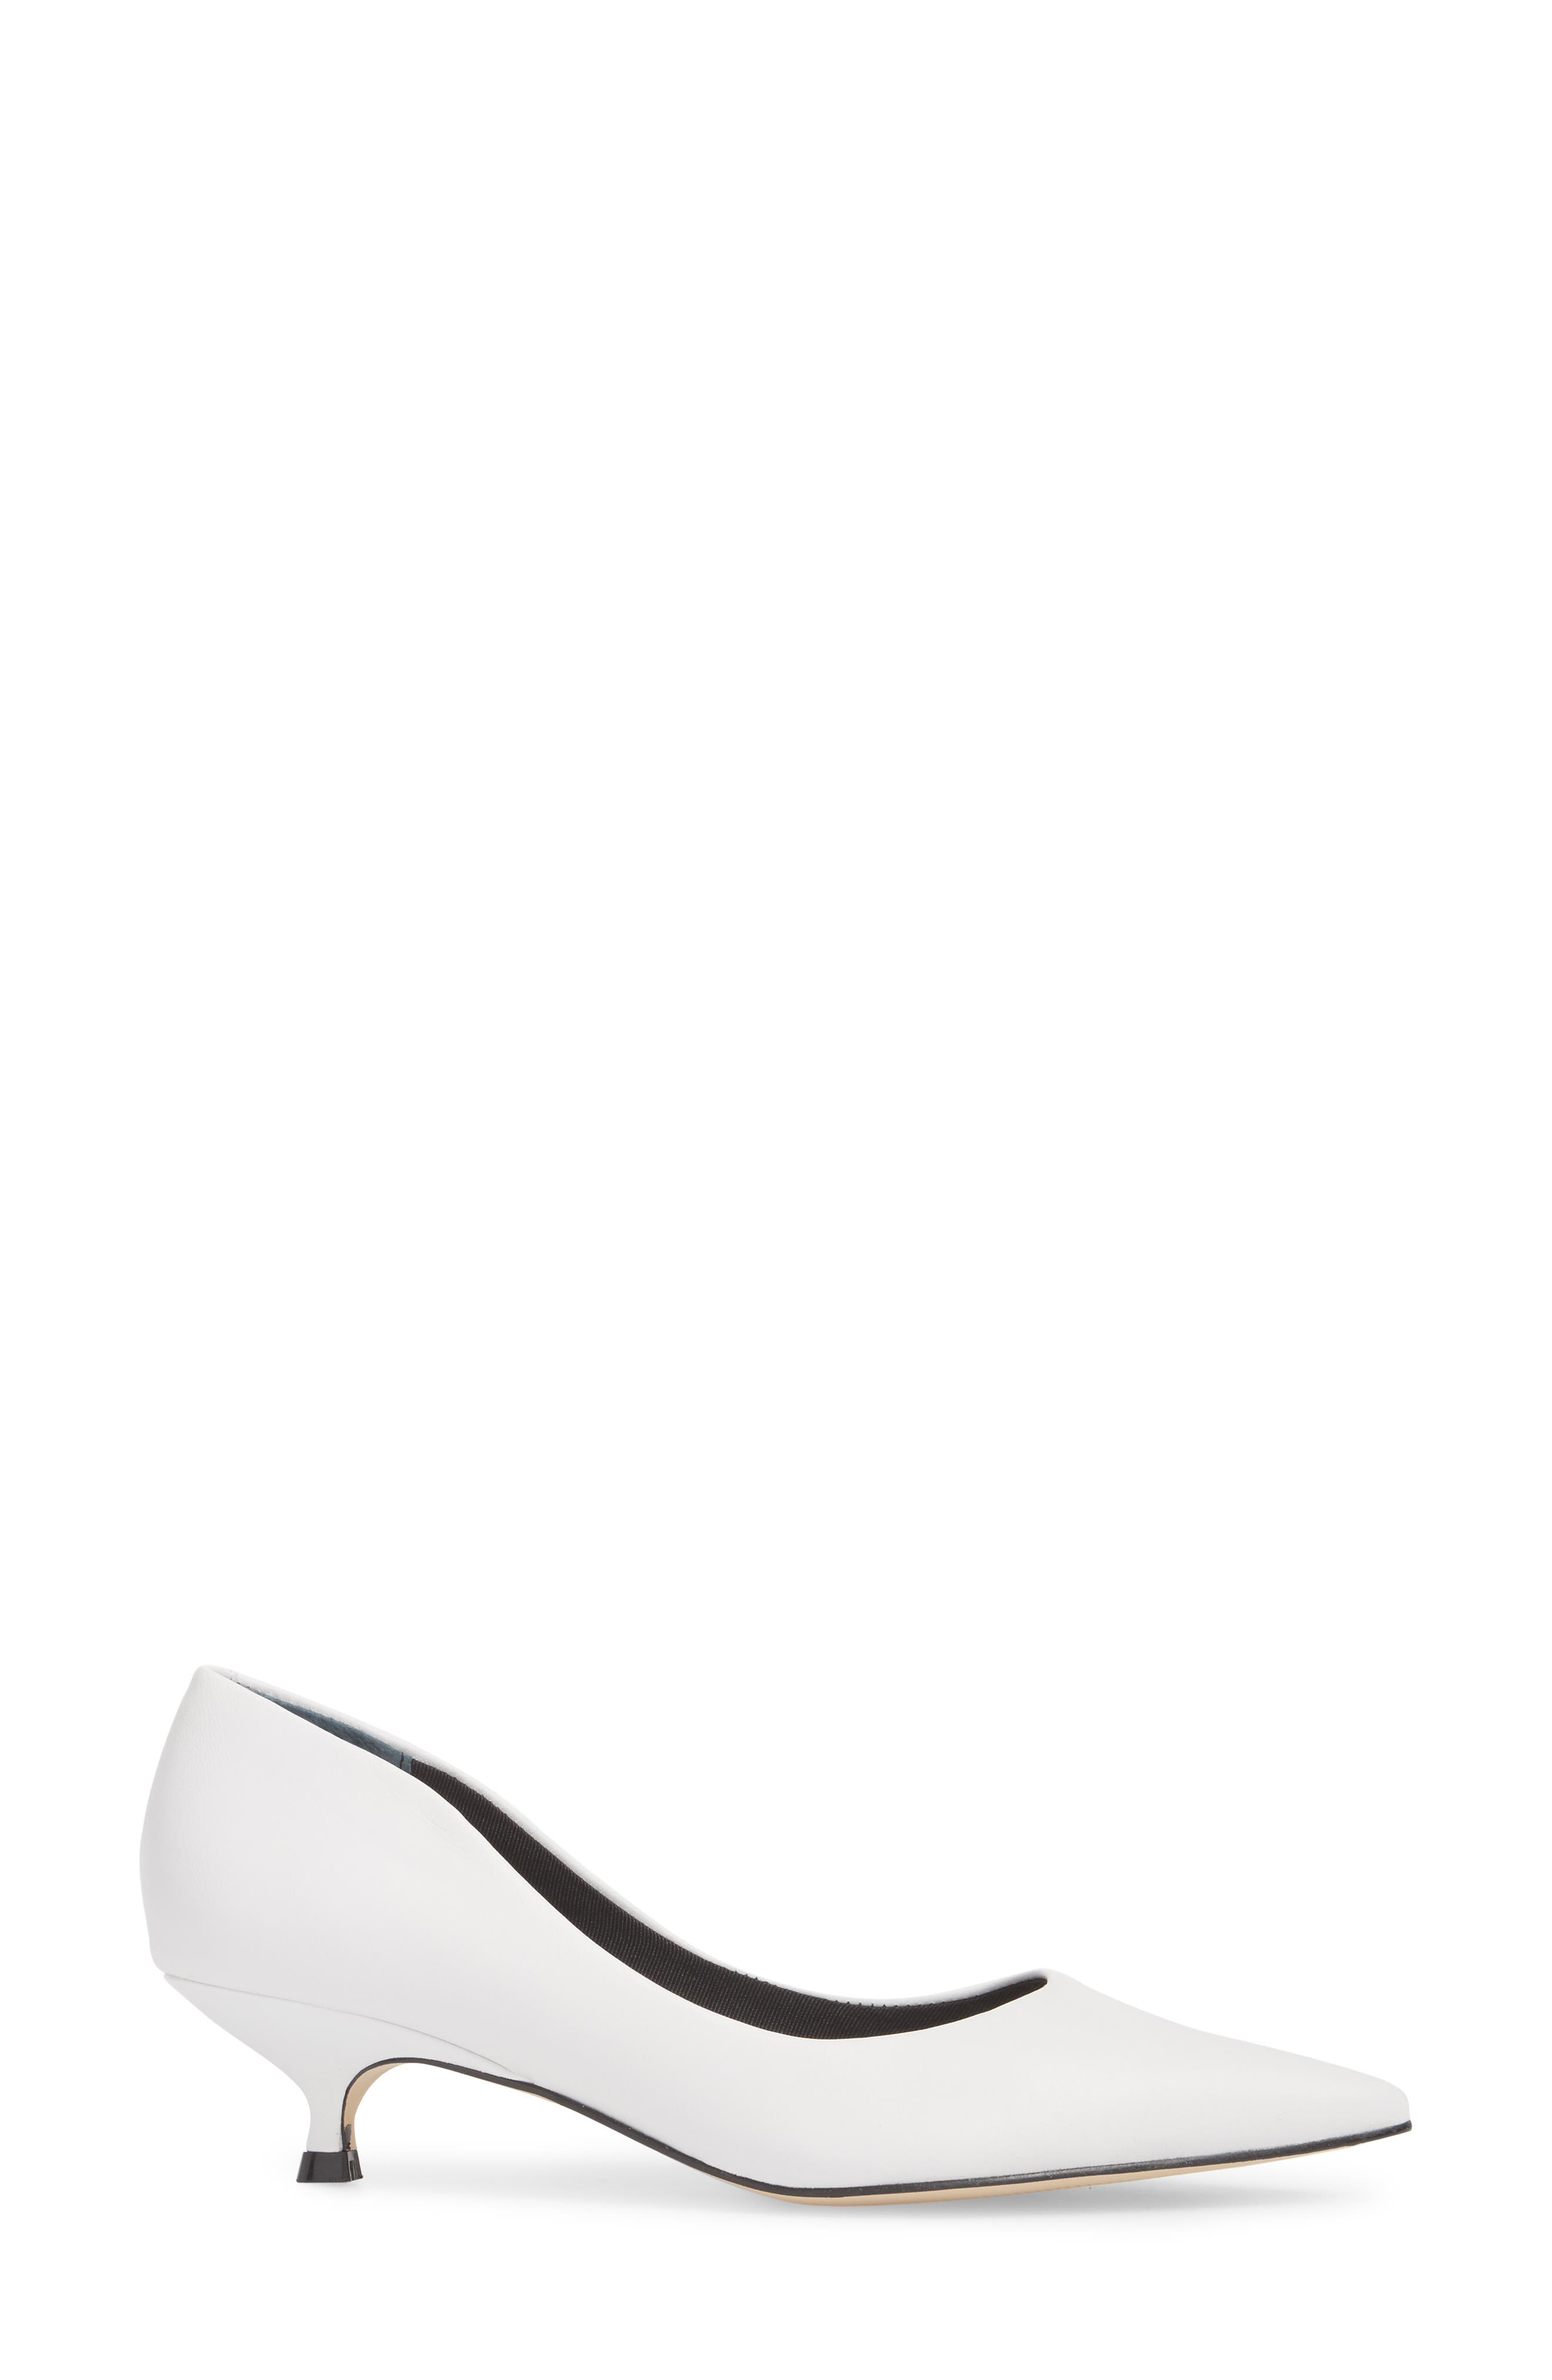 Xanthe Kitten Heel Pump,                             Alternate thumbnail 14, color,